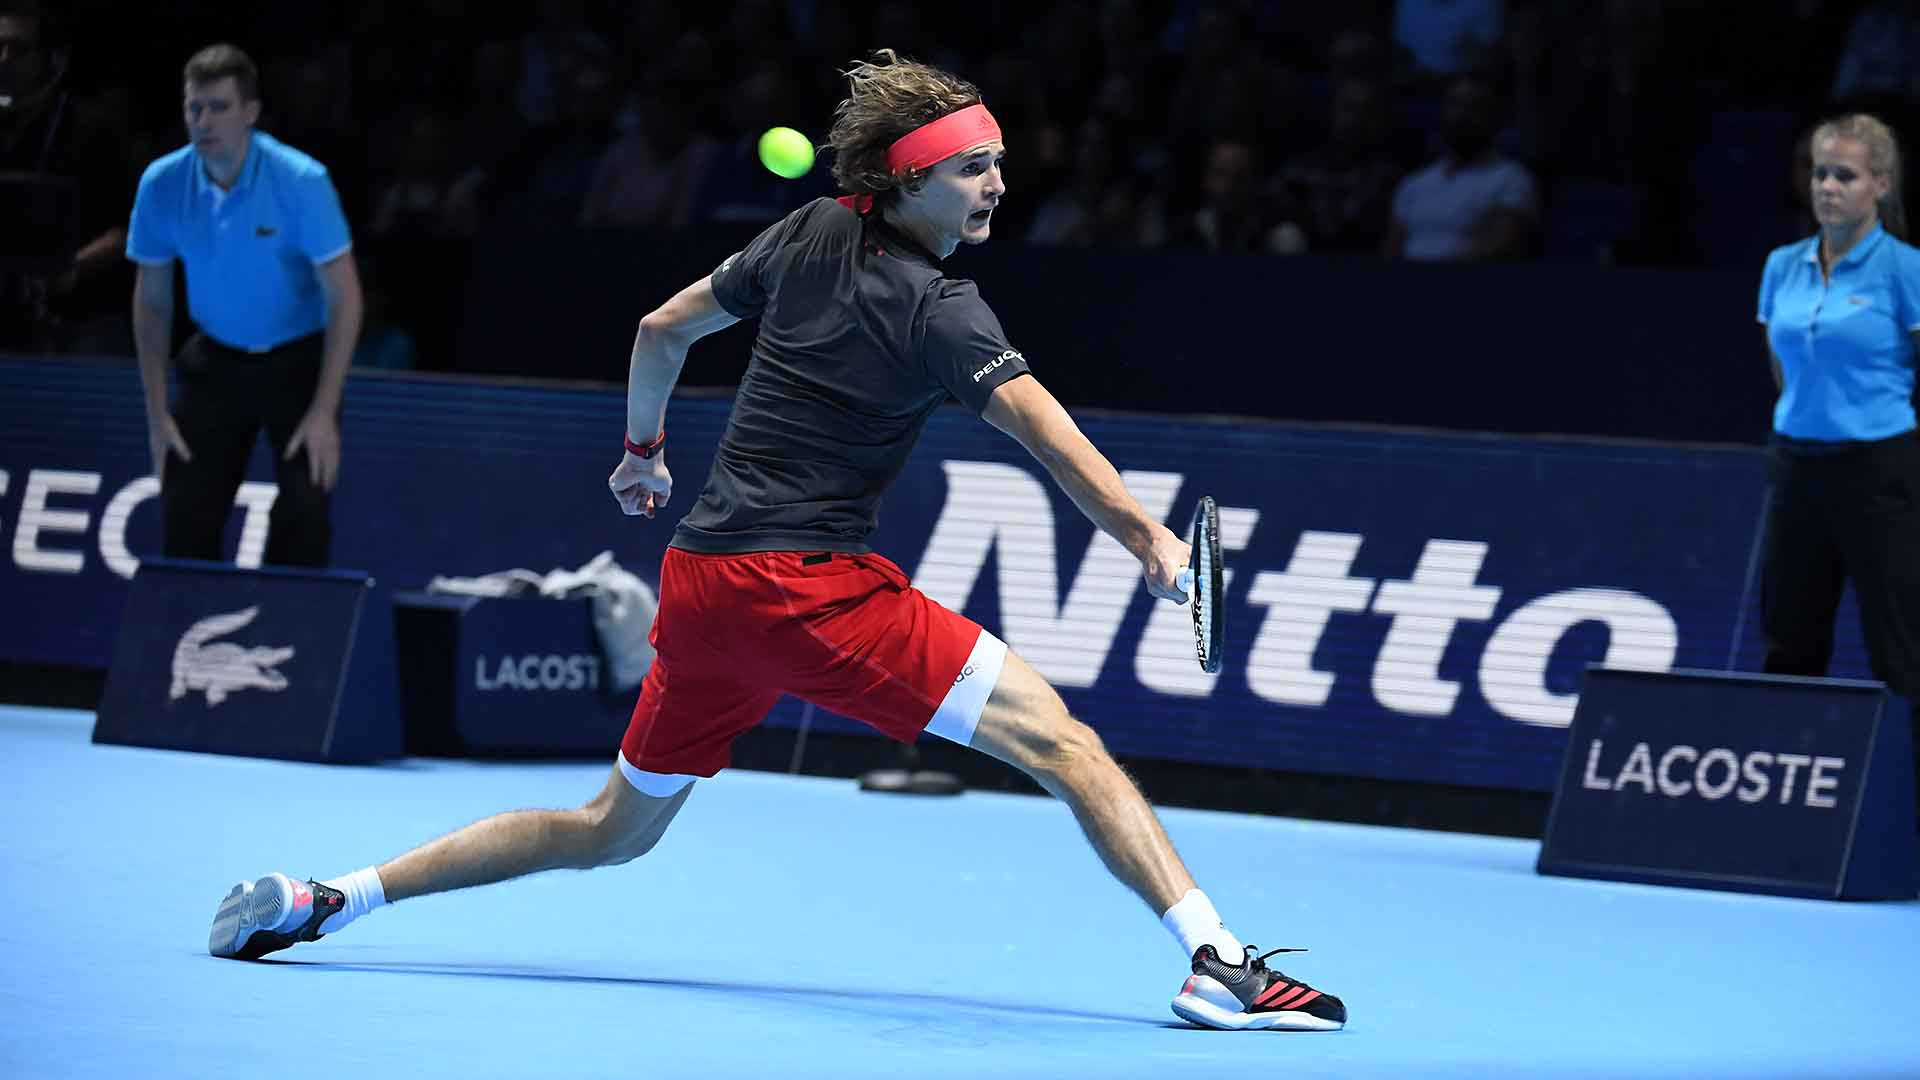 Germany's Alexander Zverev won the 2018 ATP Finals in London ©ATP Finals